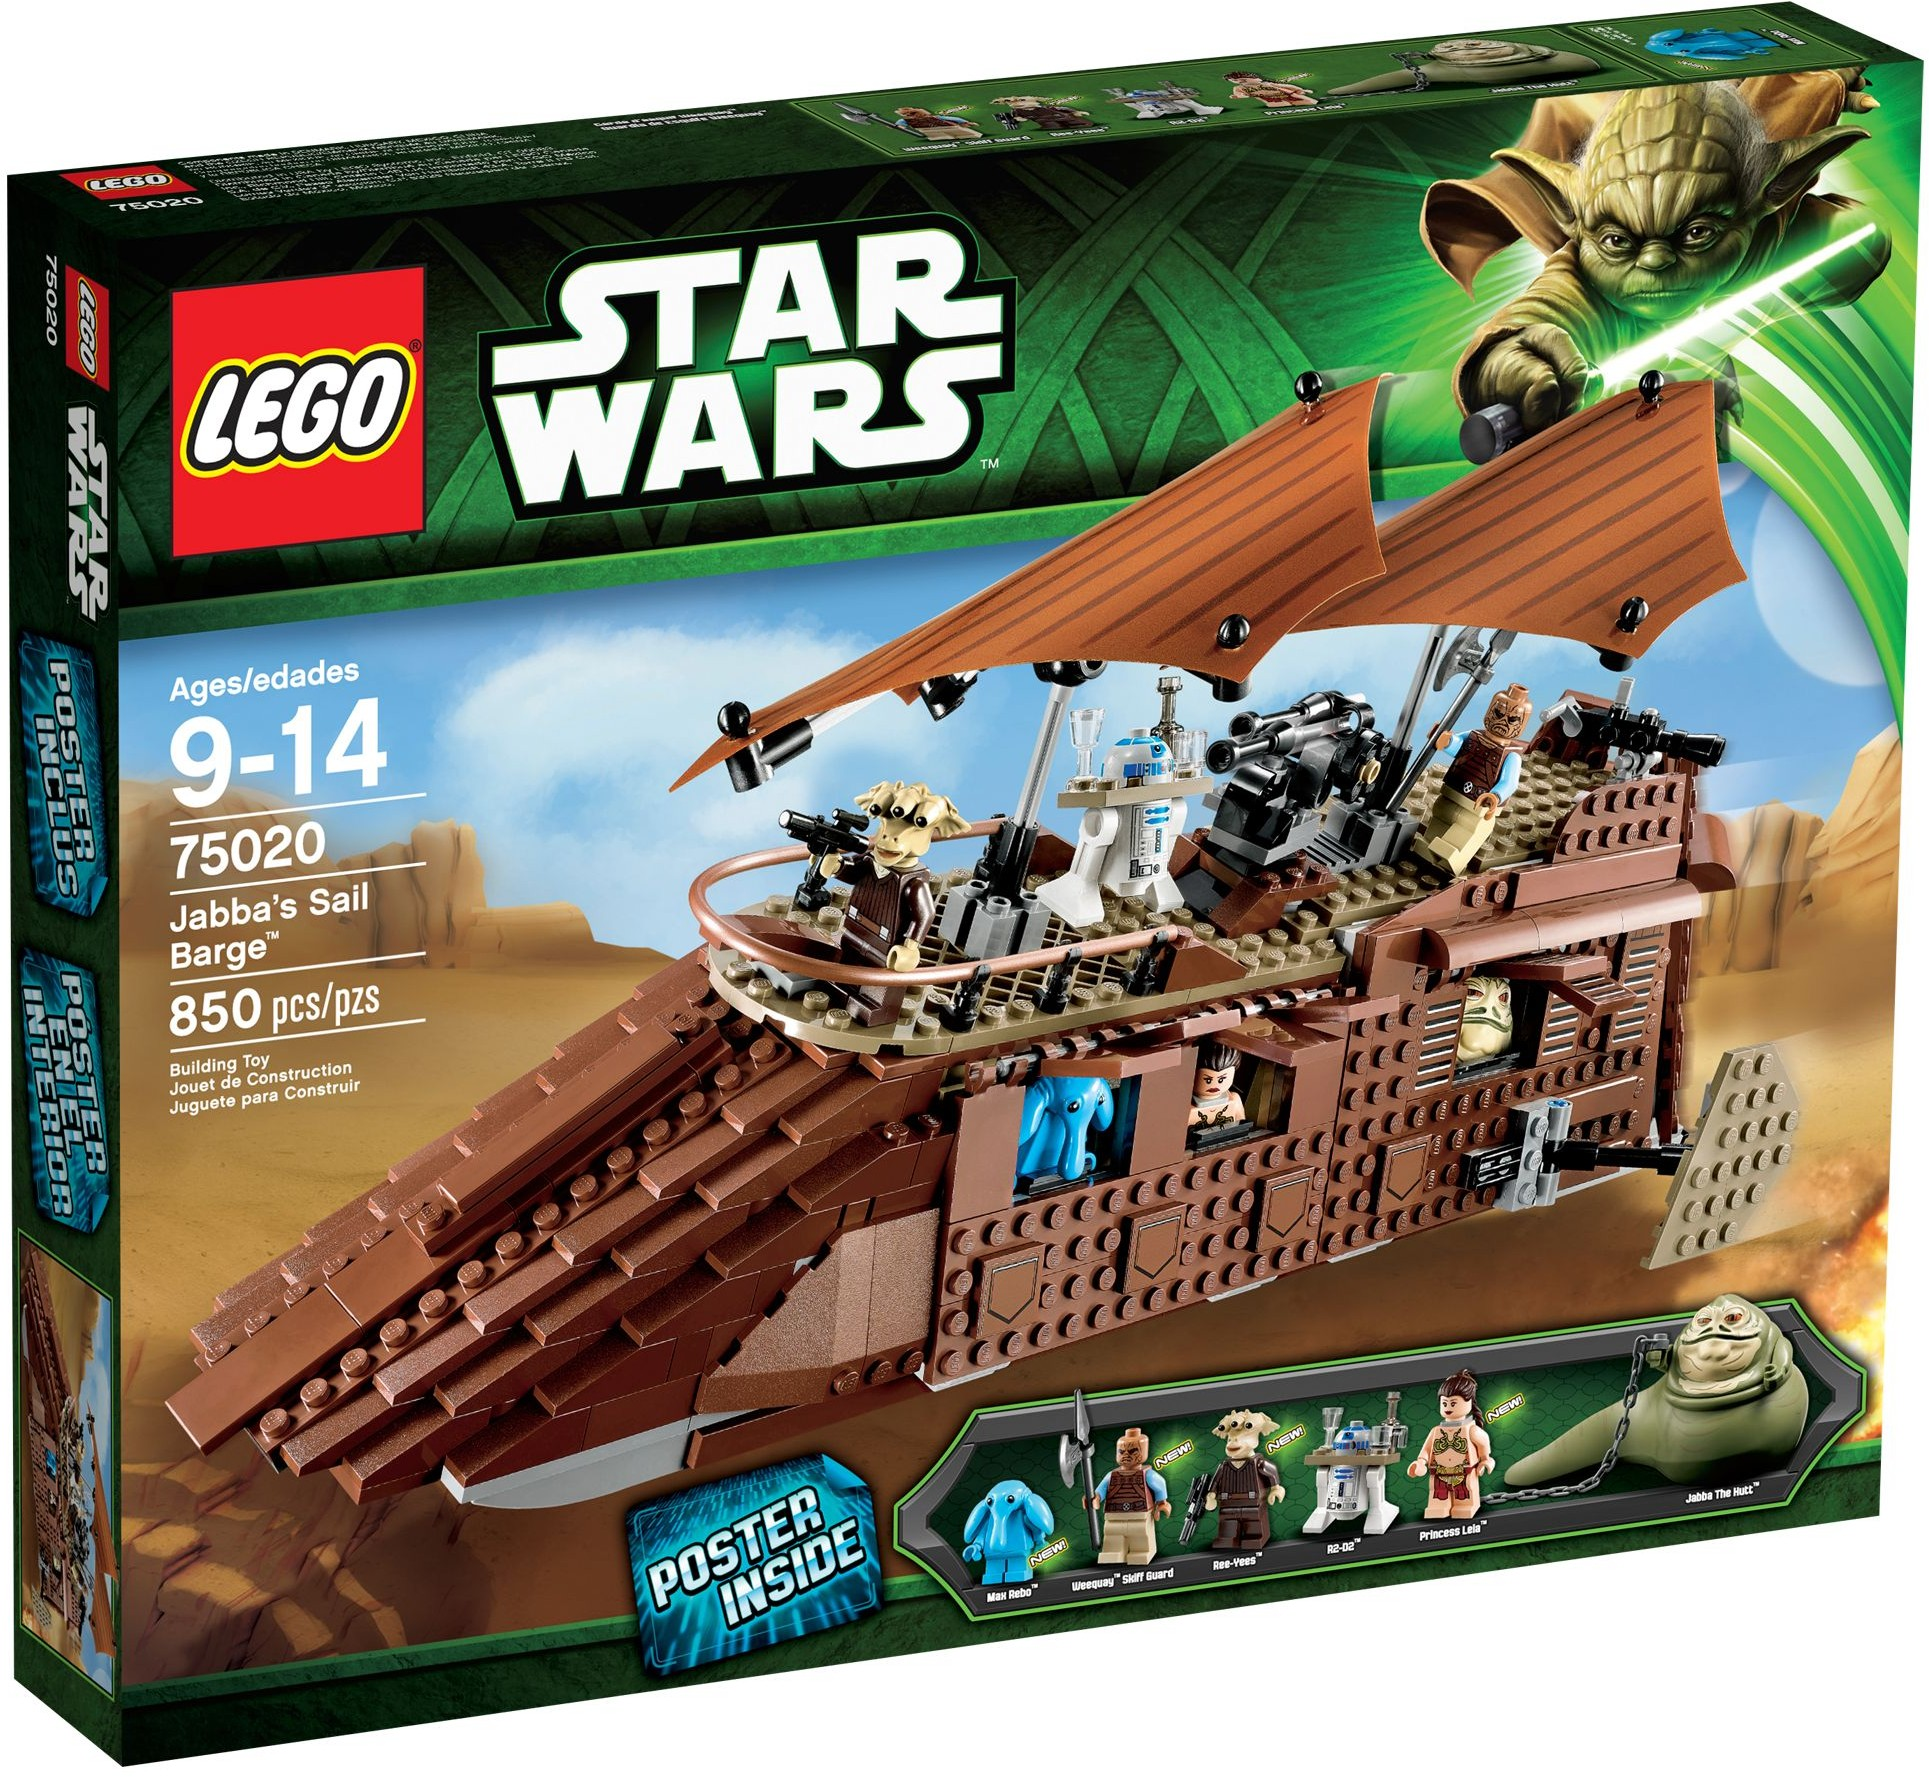 LEGO 75020 - Star Wars - Jabba's Sail Barge